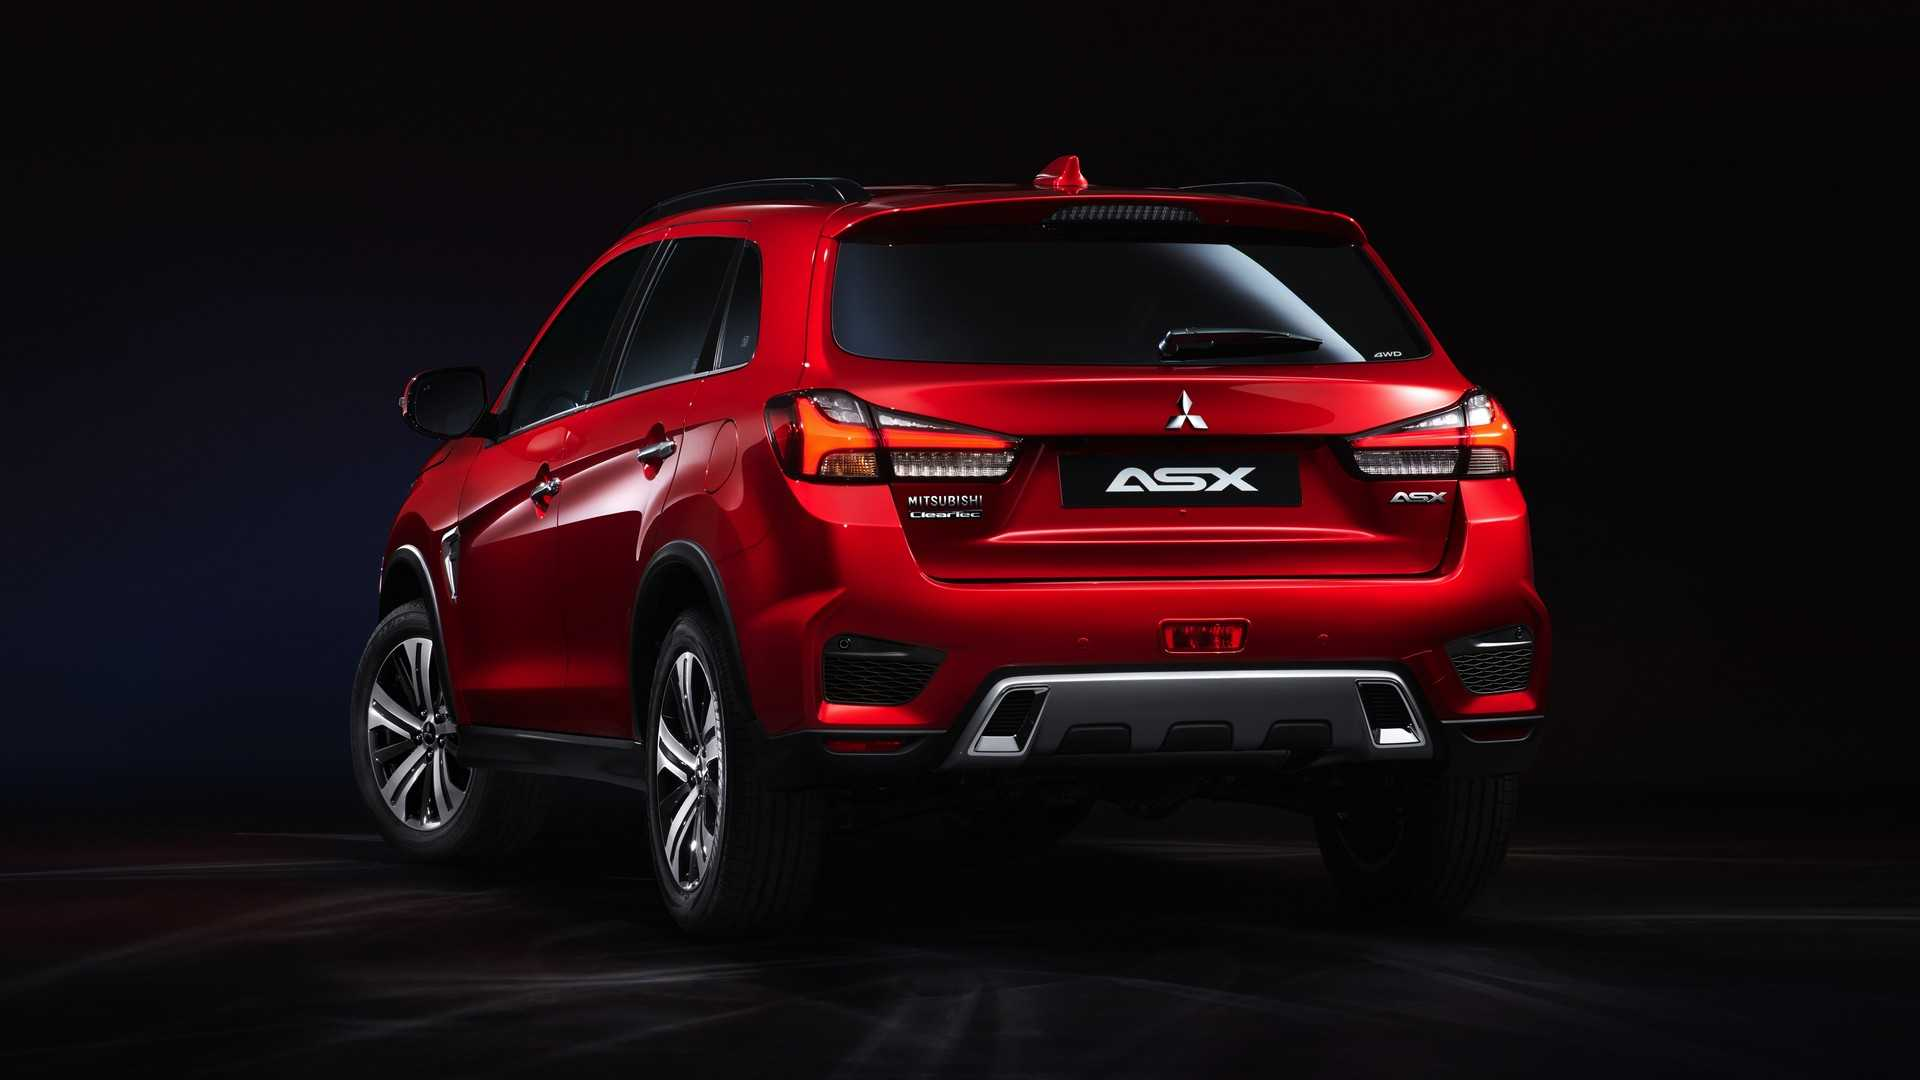 77 A Mitsubishi Asx 2020 Brasil Redesign And Review